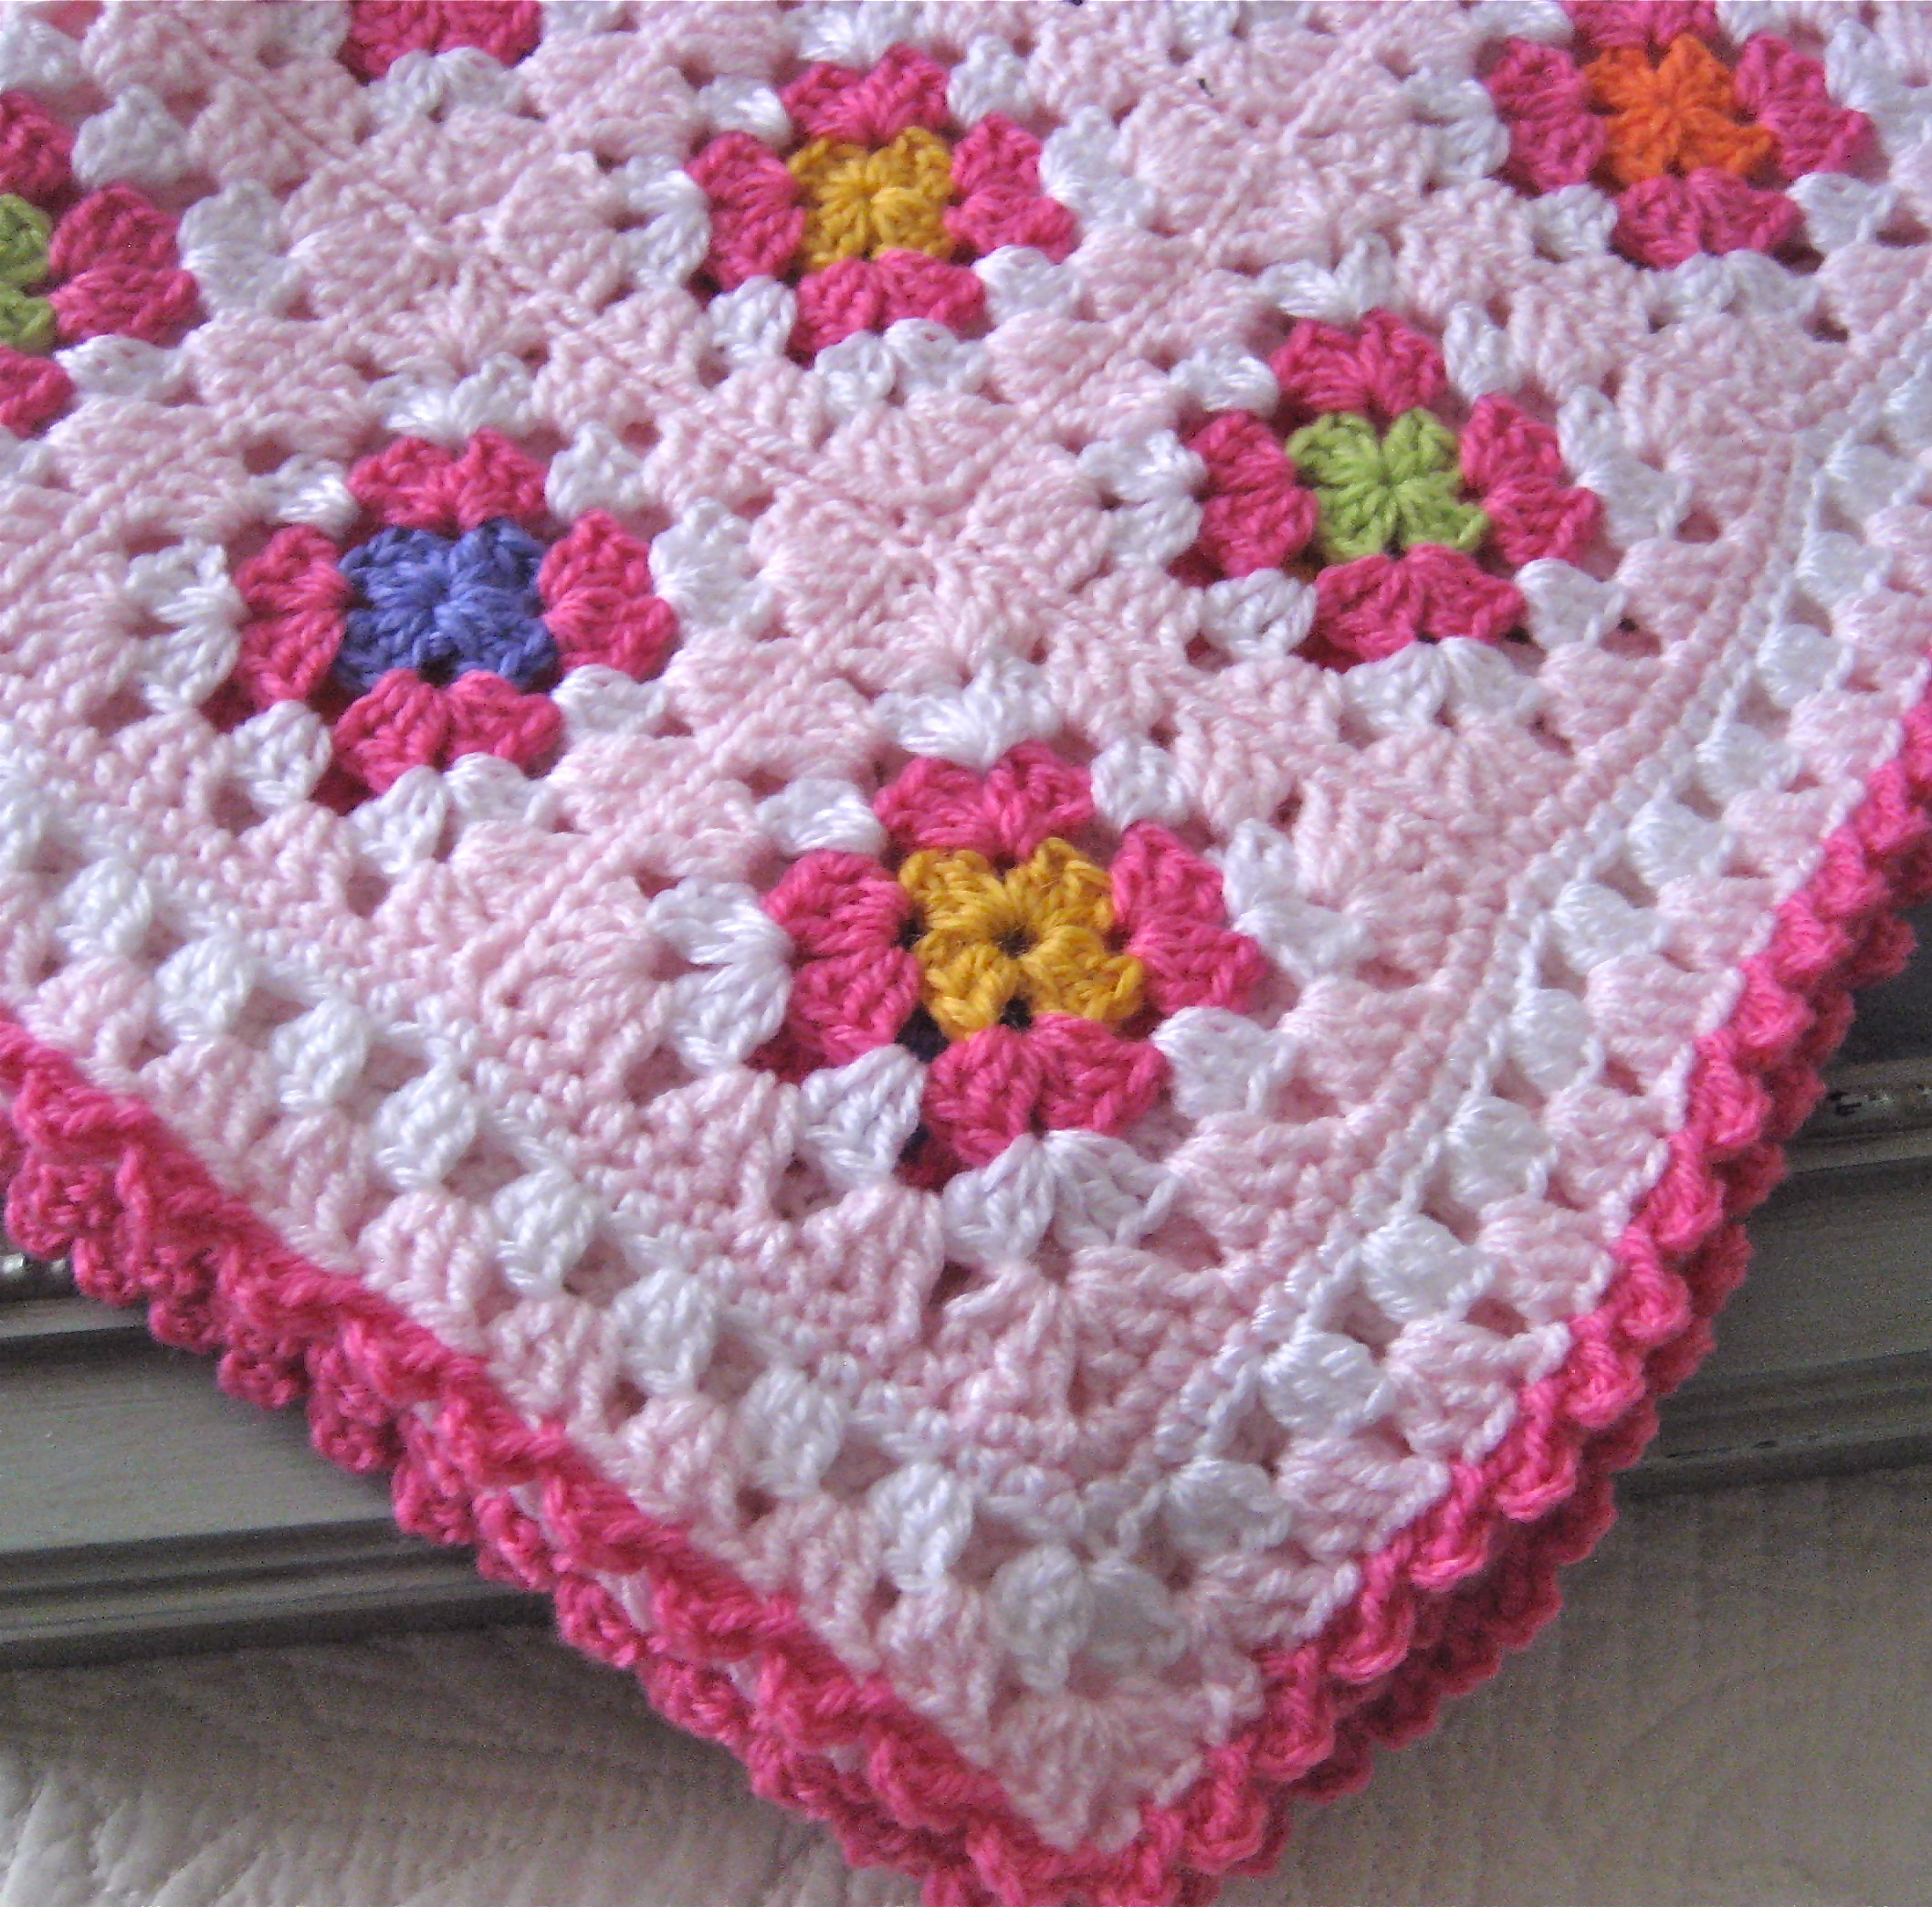 Best Of Granny Square Blanket for Baby Granny Square Baby Blanket Of Amazing 41 Pictures Granny Square Baby Blanket